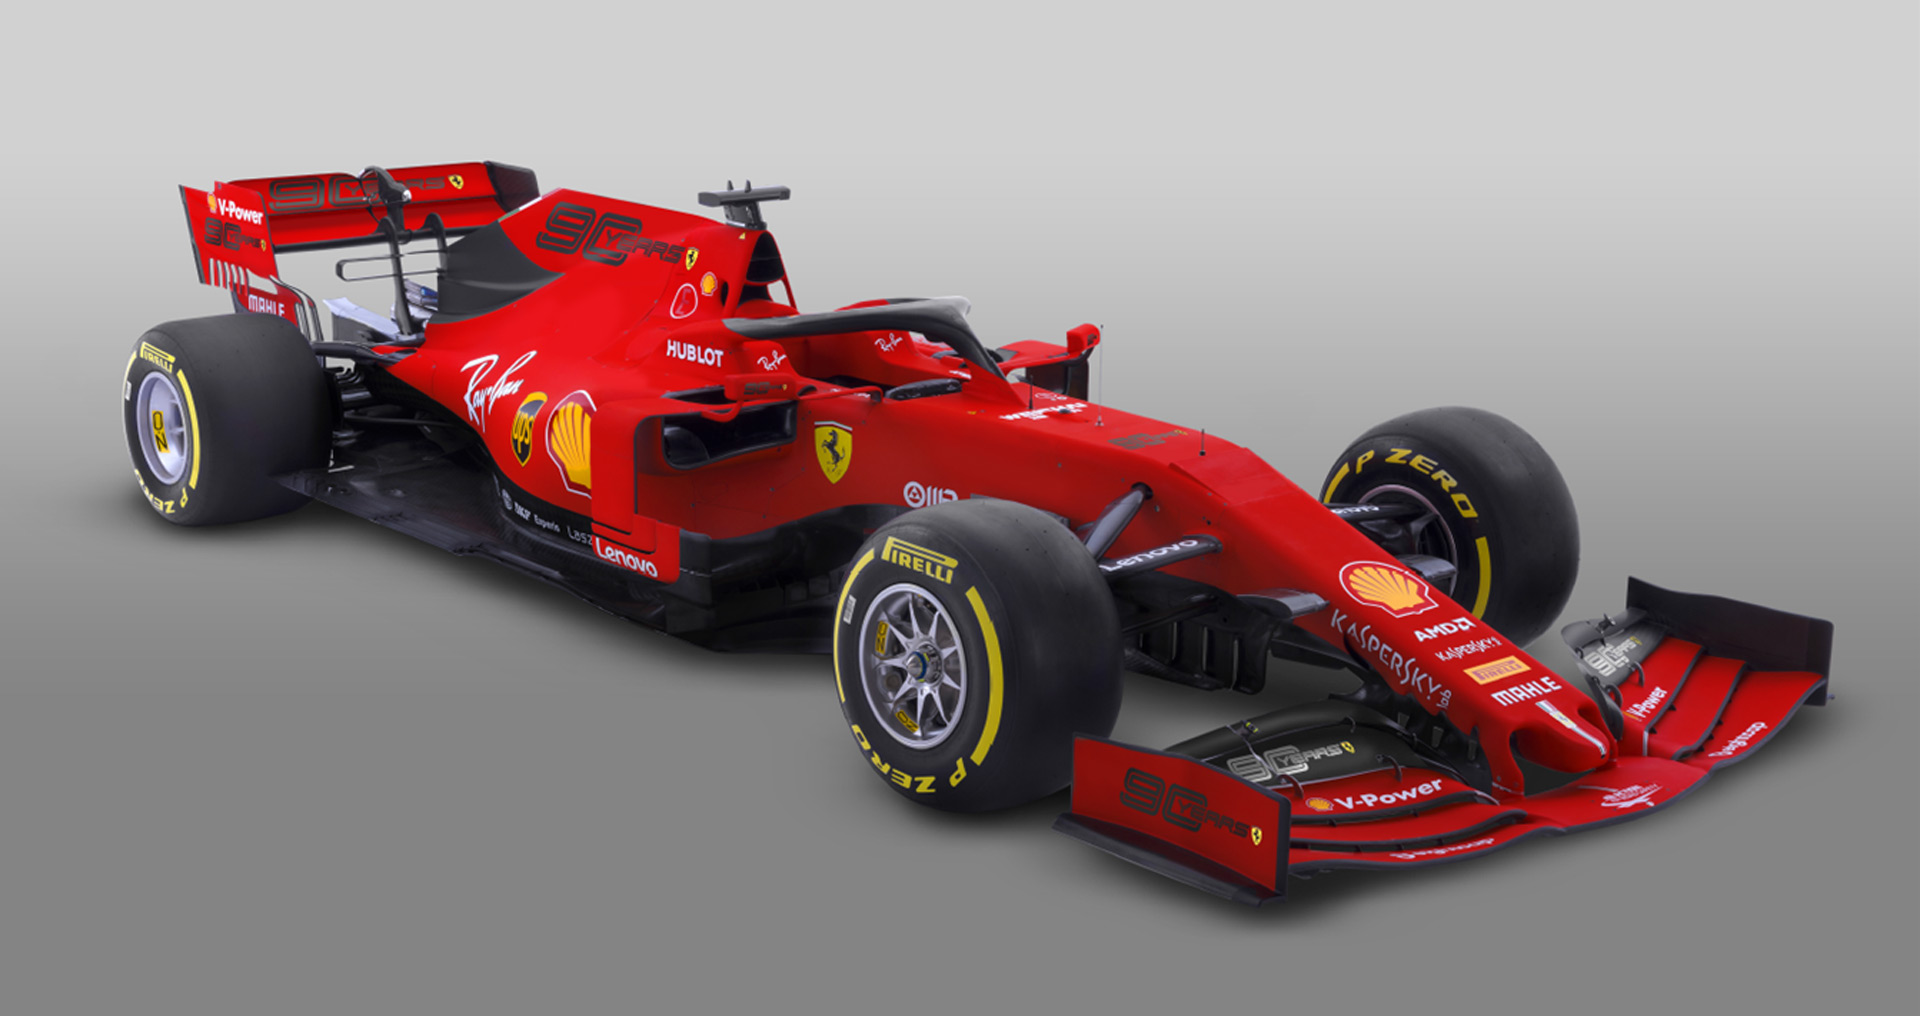 ferrari 39 s f1 car to don 90th anniversary livery for 2019 australian grand prix. Black Bedroom Furniture Sets. Home Design Ideas